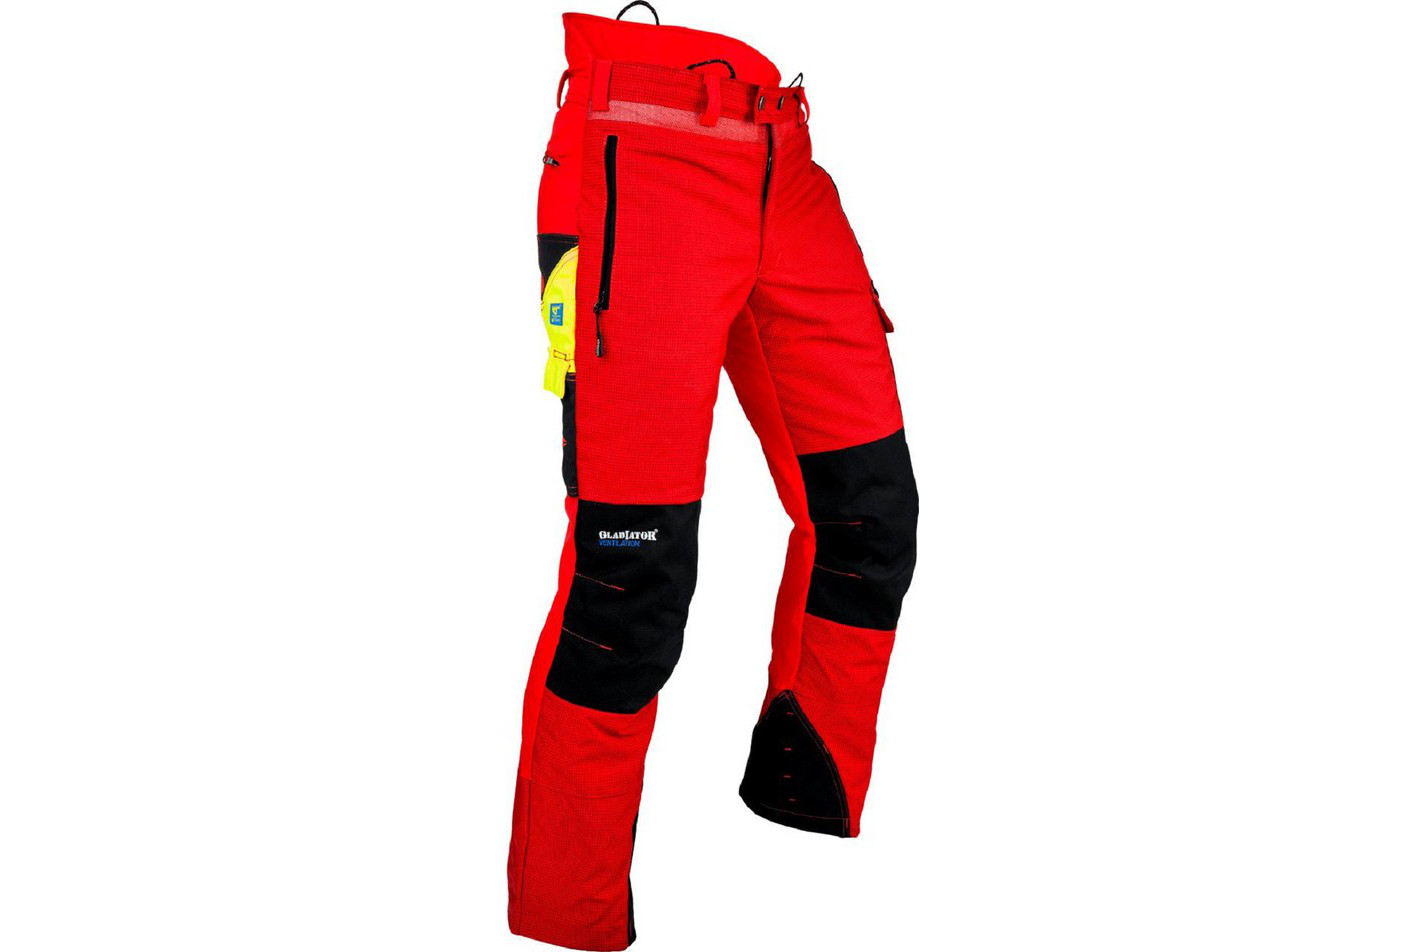 PANTALON ANTI COUPURE PFANNER GLADIATOR VENTILATION - ROUGE